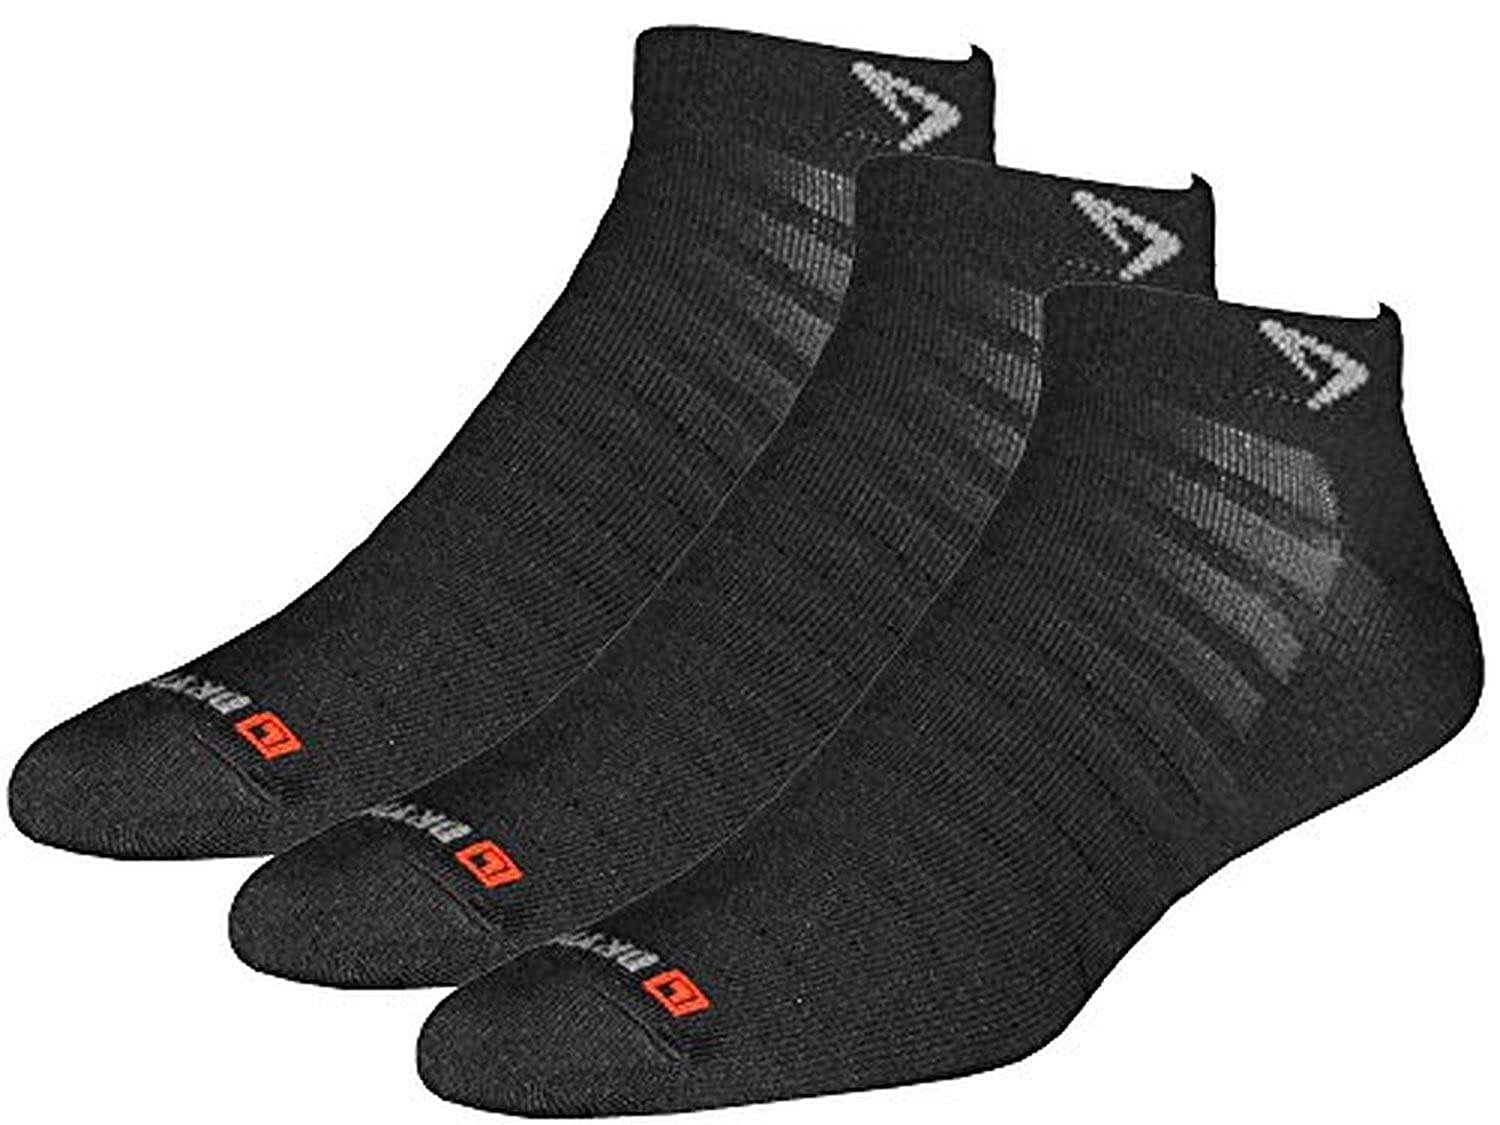 Amazon.com: Drymax Run – Calcetines ultra delgados ...